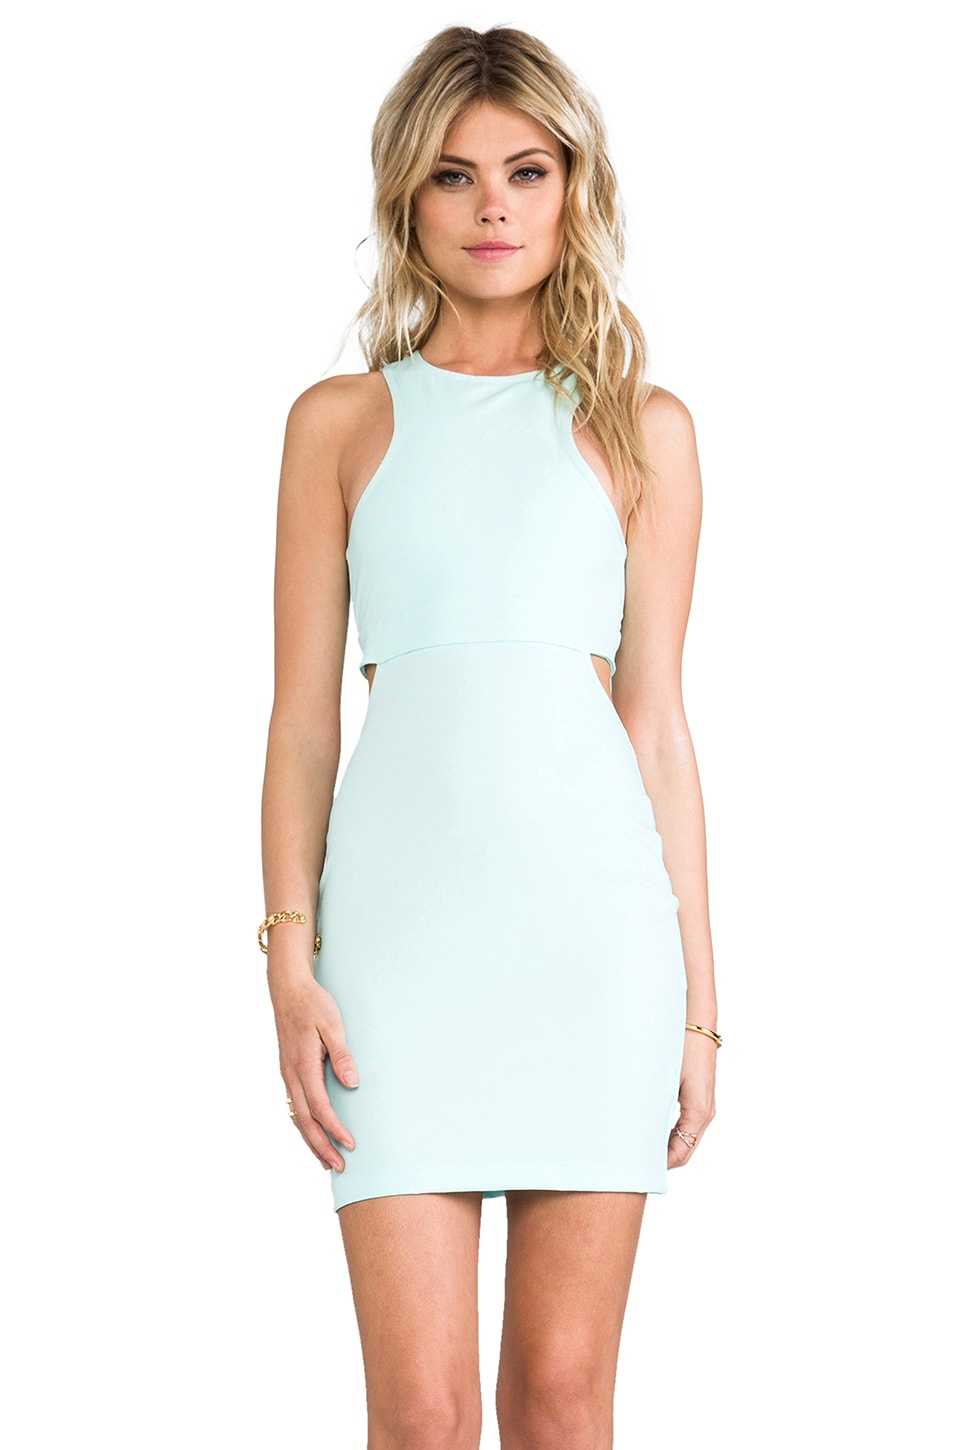 BEC&BRIDGE Tyra Mini Dress in Mint